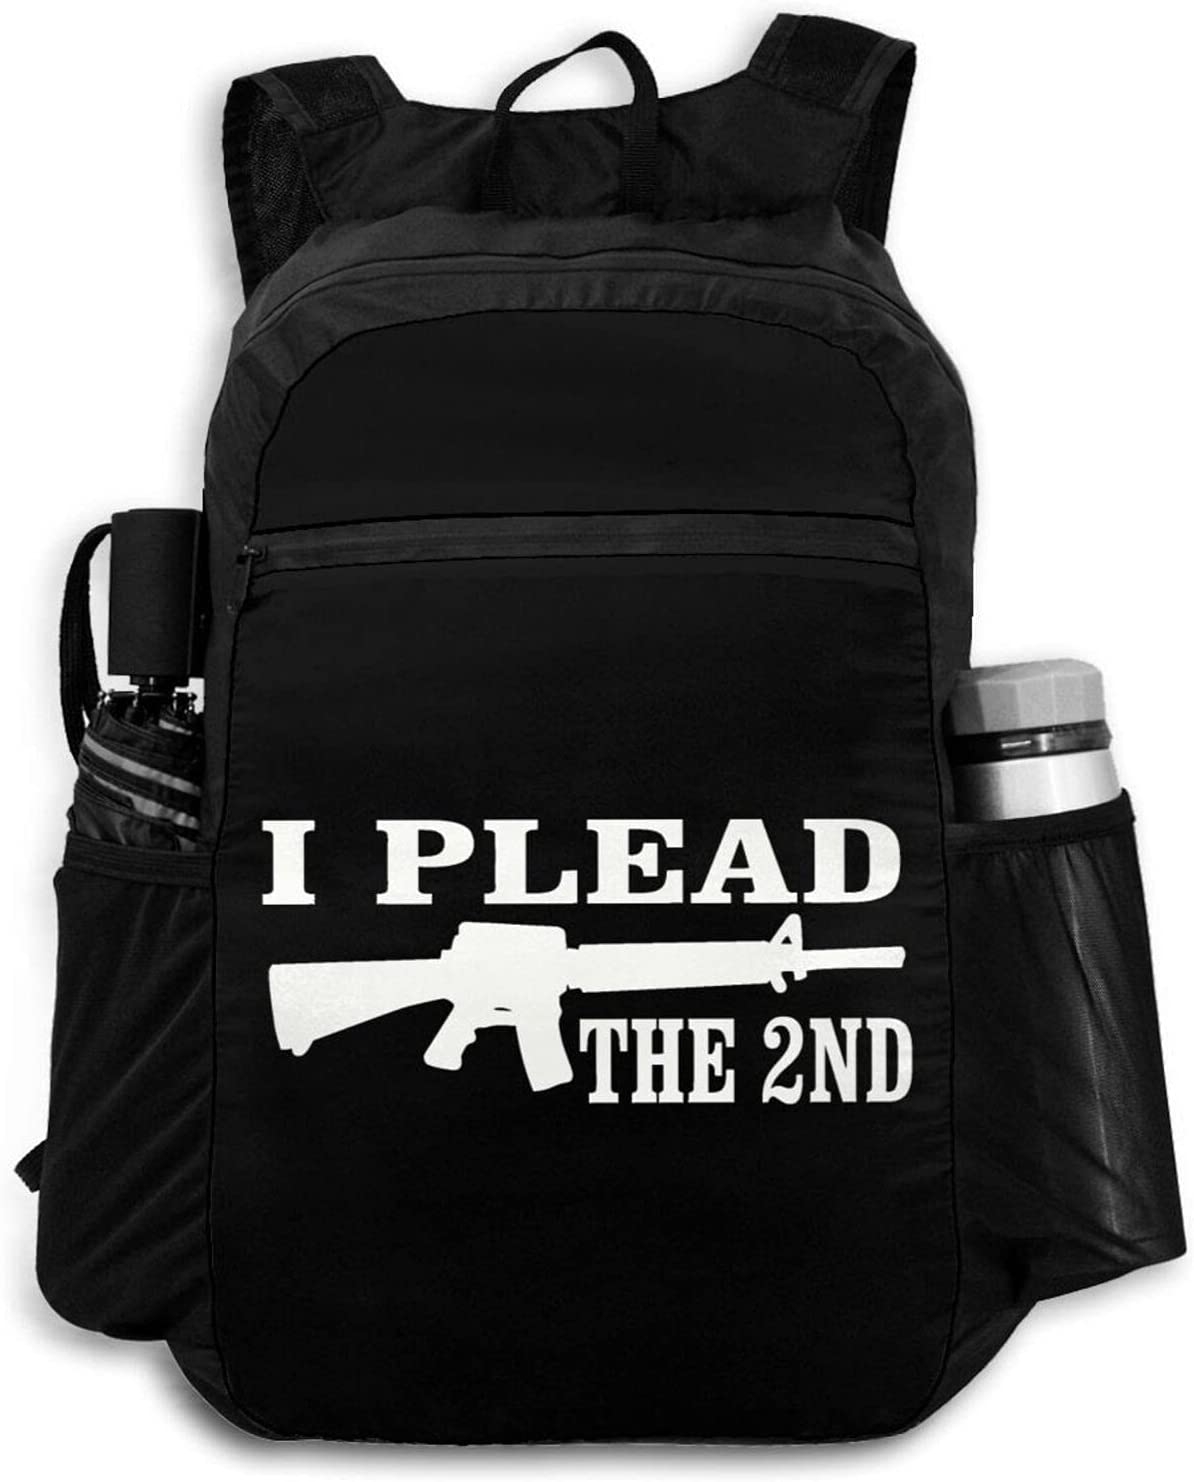 Zolama I Plead The 2ND Backpacks Men New product!! Women Packable specialty shop for Day Cute